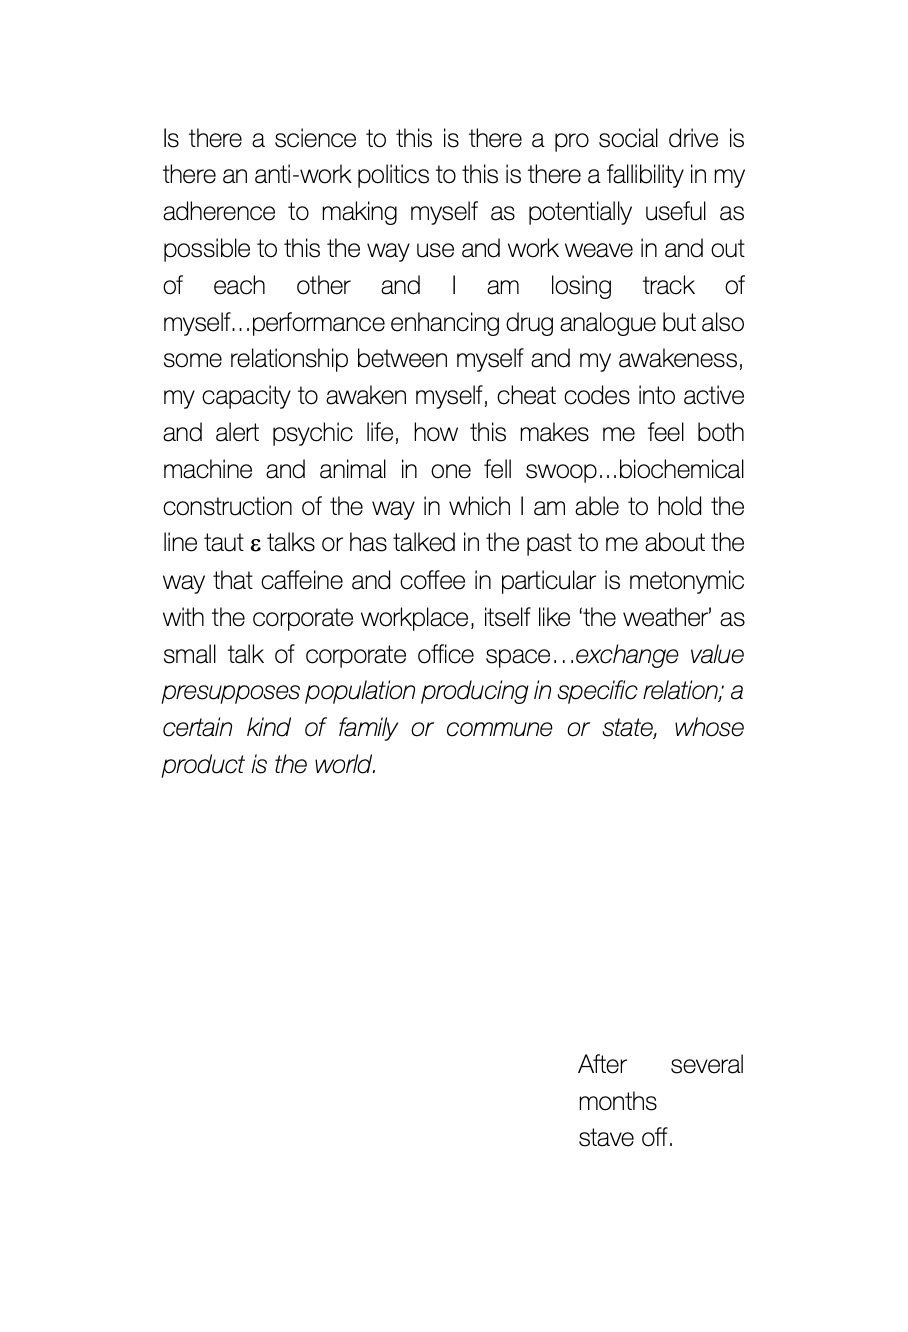 """A prose poem reading: """"Is there a science to this is there a pro social drive is there an anti-work politics to this is there a fallibility in my adherence to making myself as potentially useful as possible to this the way use and work weave in and out of each other and I am losing track of myself...performance enhancing drug analogue but also some relationship between myself and my awakeness, my capacity to awaken myself, cheat codes into active and alert psychic life, how this makes me feel both machine and animal in one fell swoop...biochemical construction of the way in which I am able to hold the line taut e talks or has talked in the past to me about the way that caffeine and coffee in particular is metonymic with the corporate workplace, itself like 'the weather' as small talk of corporate office space...exchange value presupposes population producing in specific relation; a certain kind of family or commune or state, whose product is the world."""""""